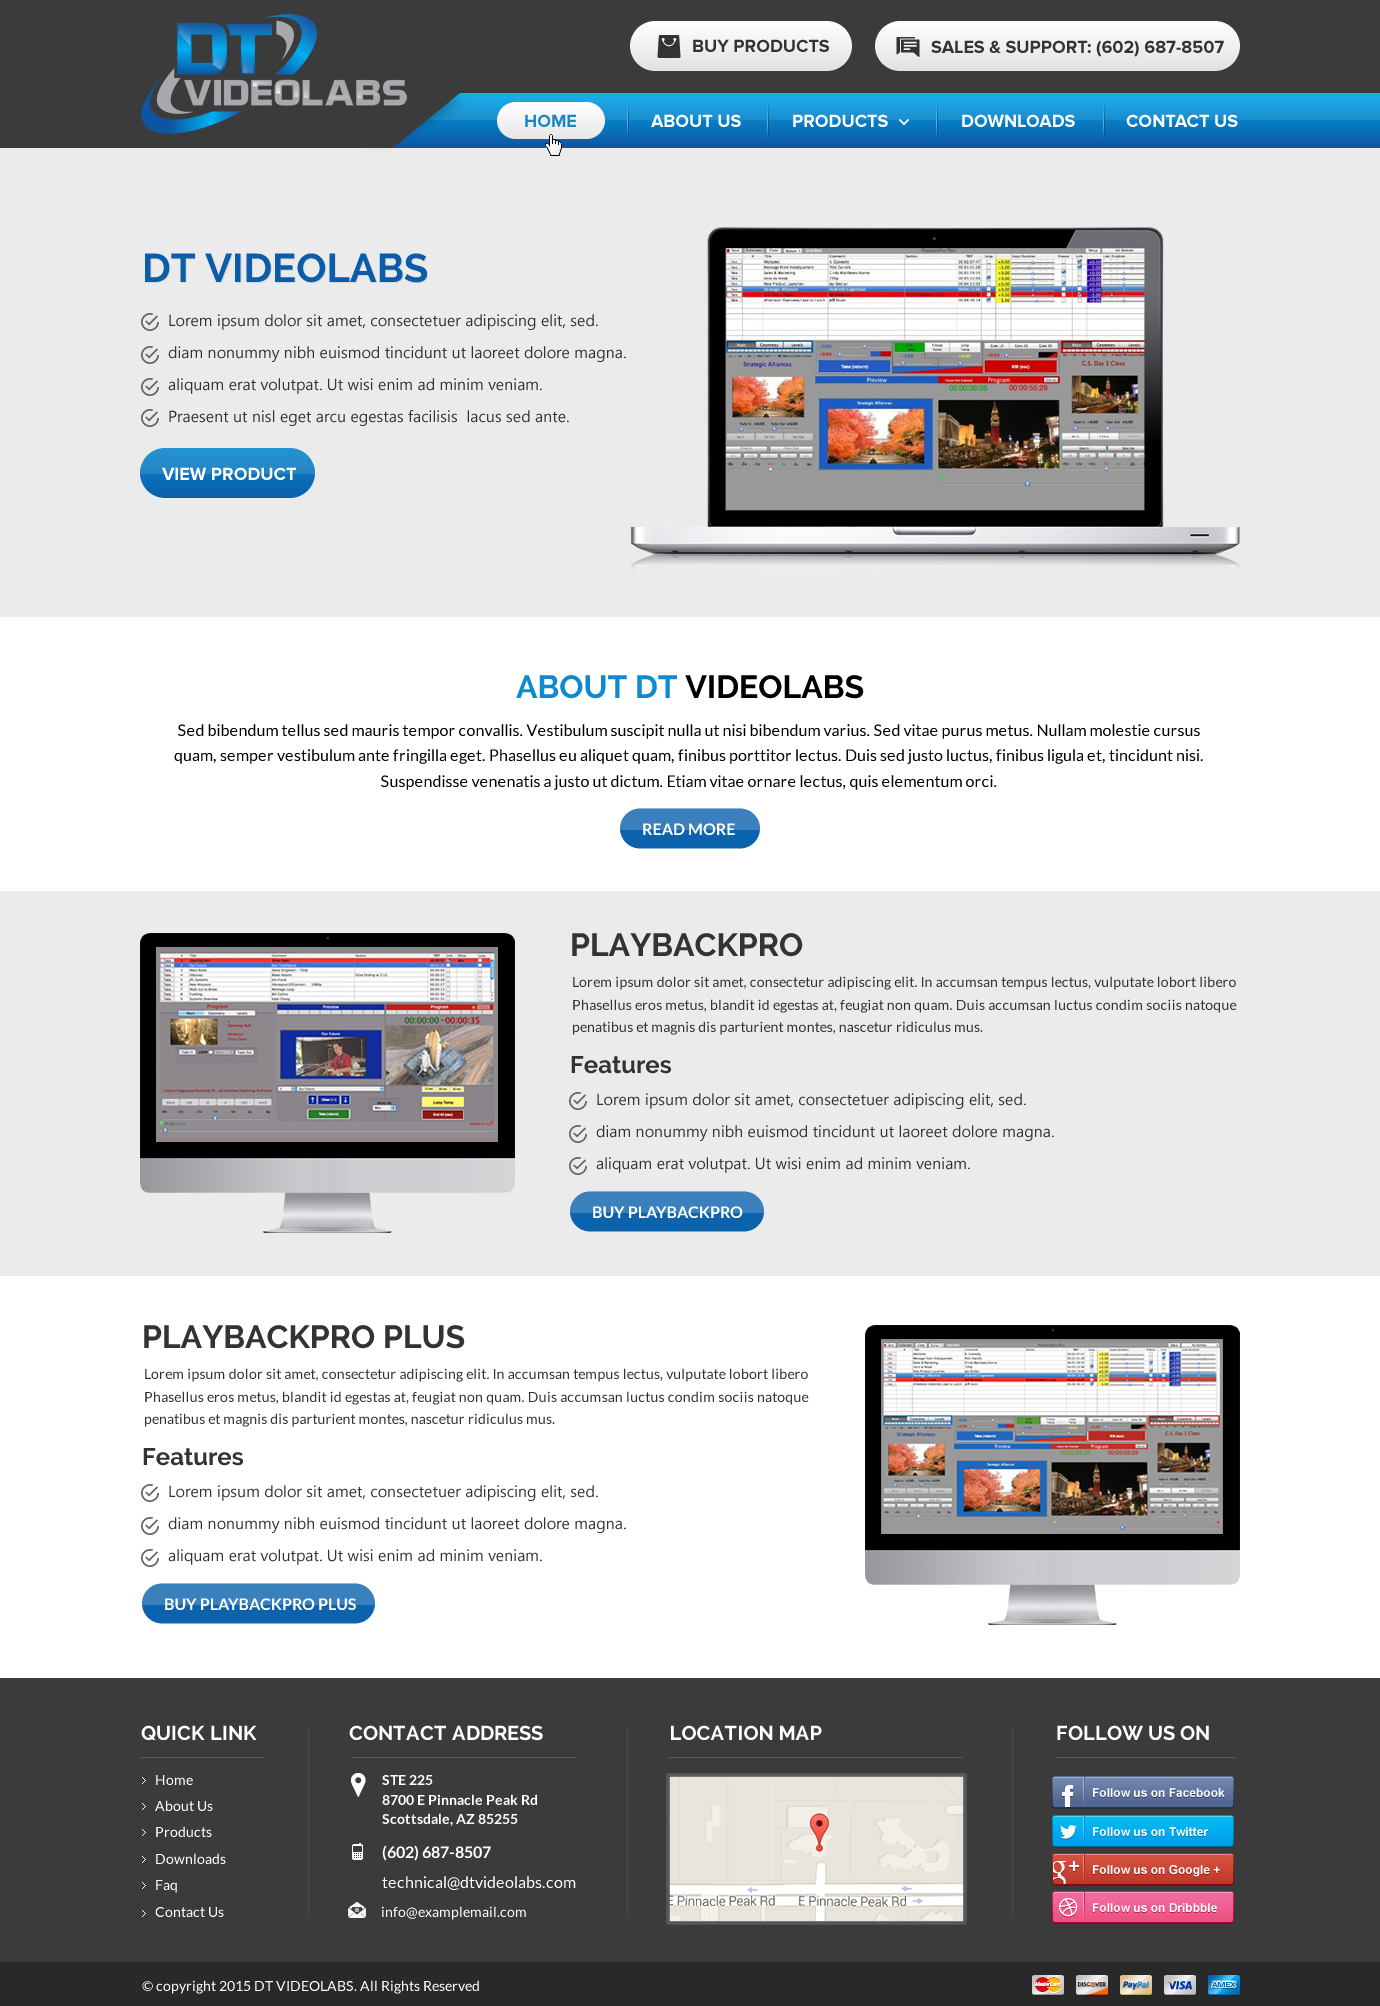 Modernize Website and add index page - Software